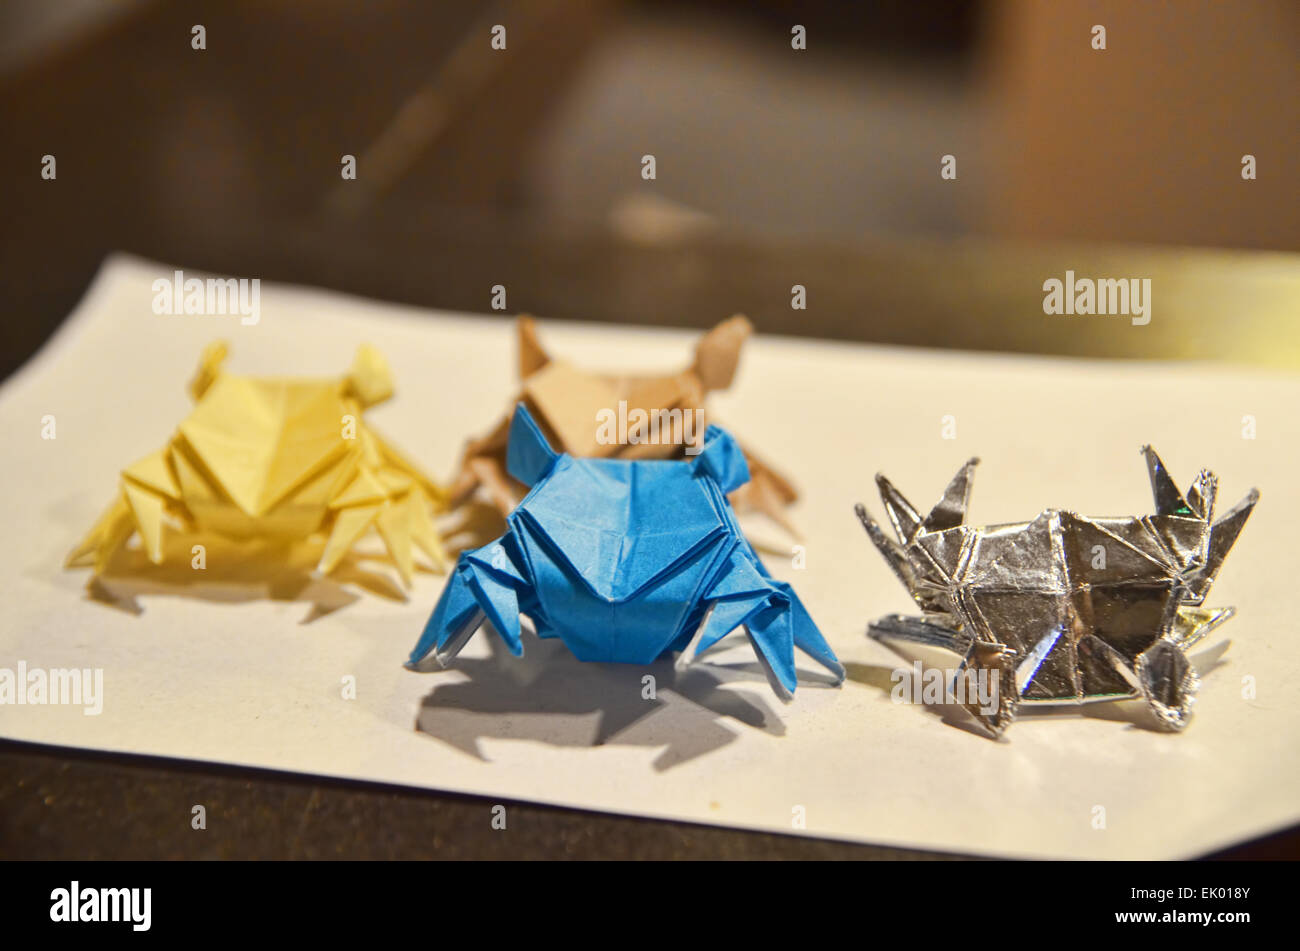 Some of Origami Crabs - Stock Image